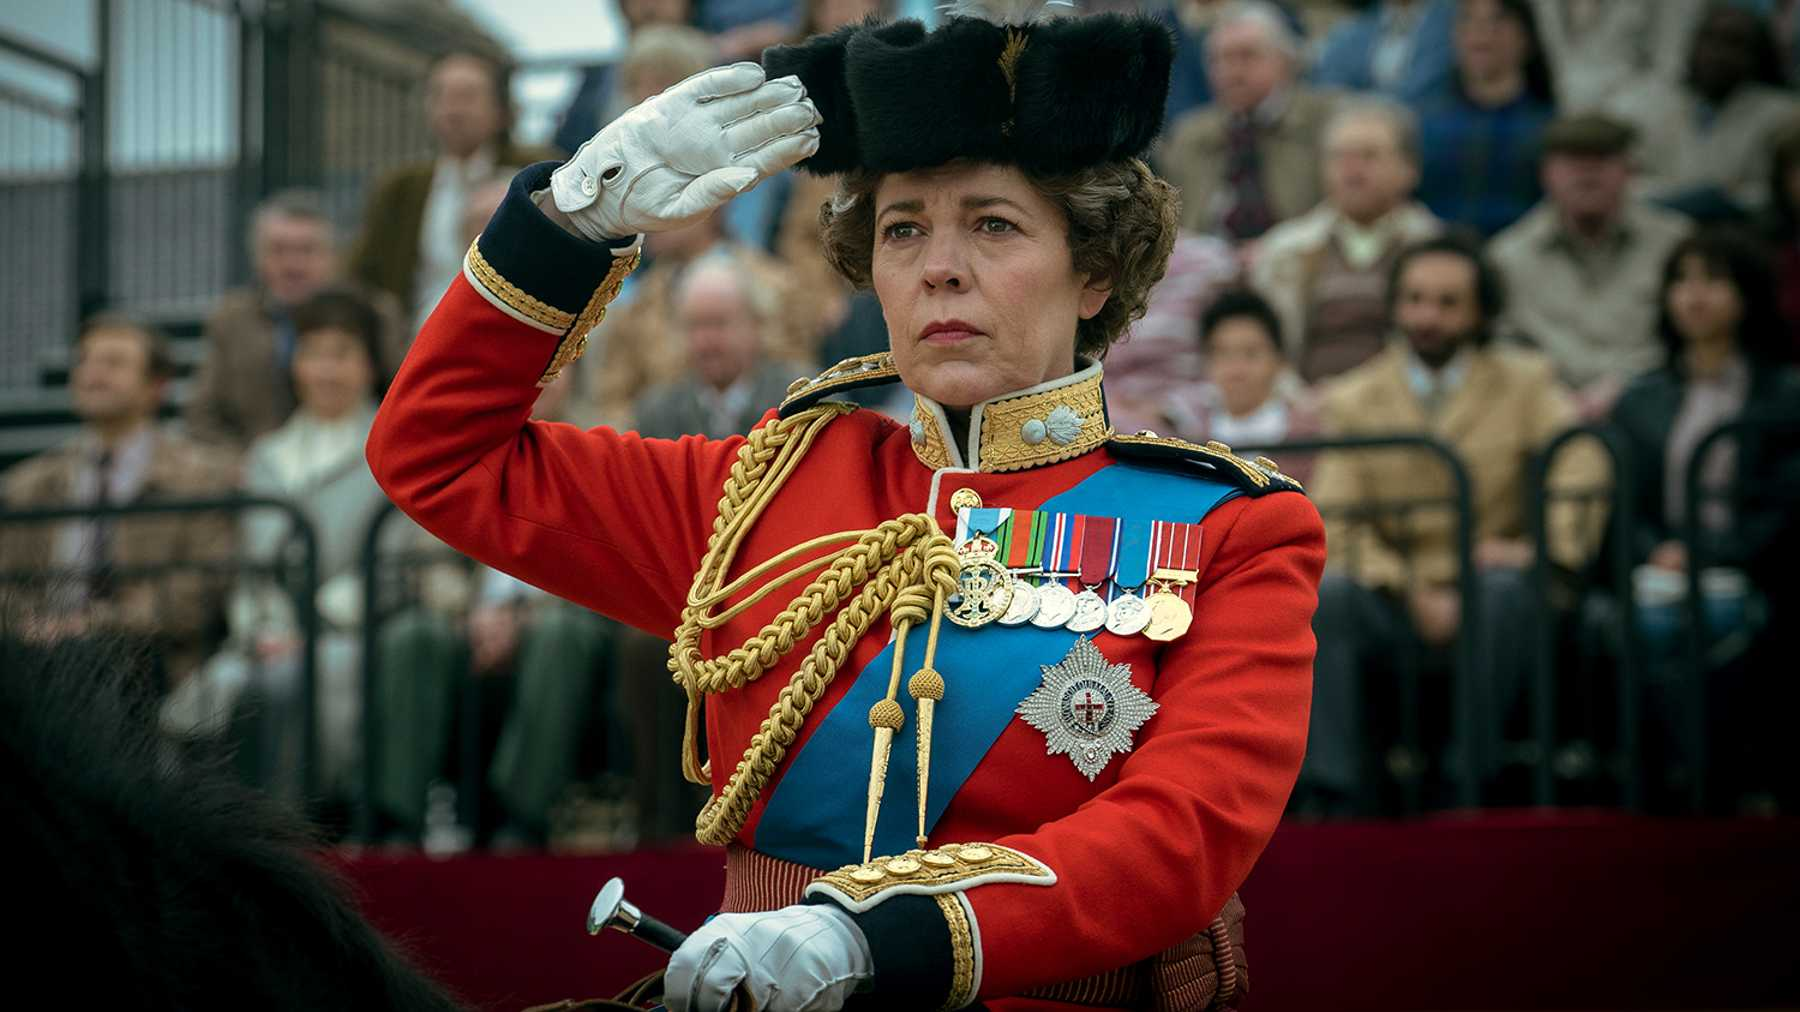 Veredito da 4ª Temporada de The Crown